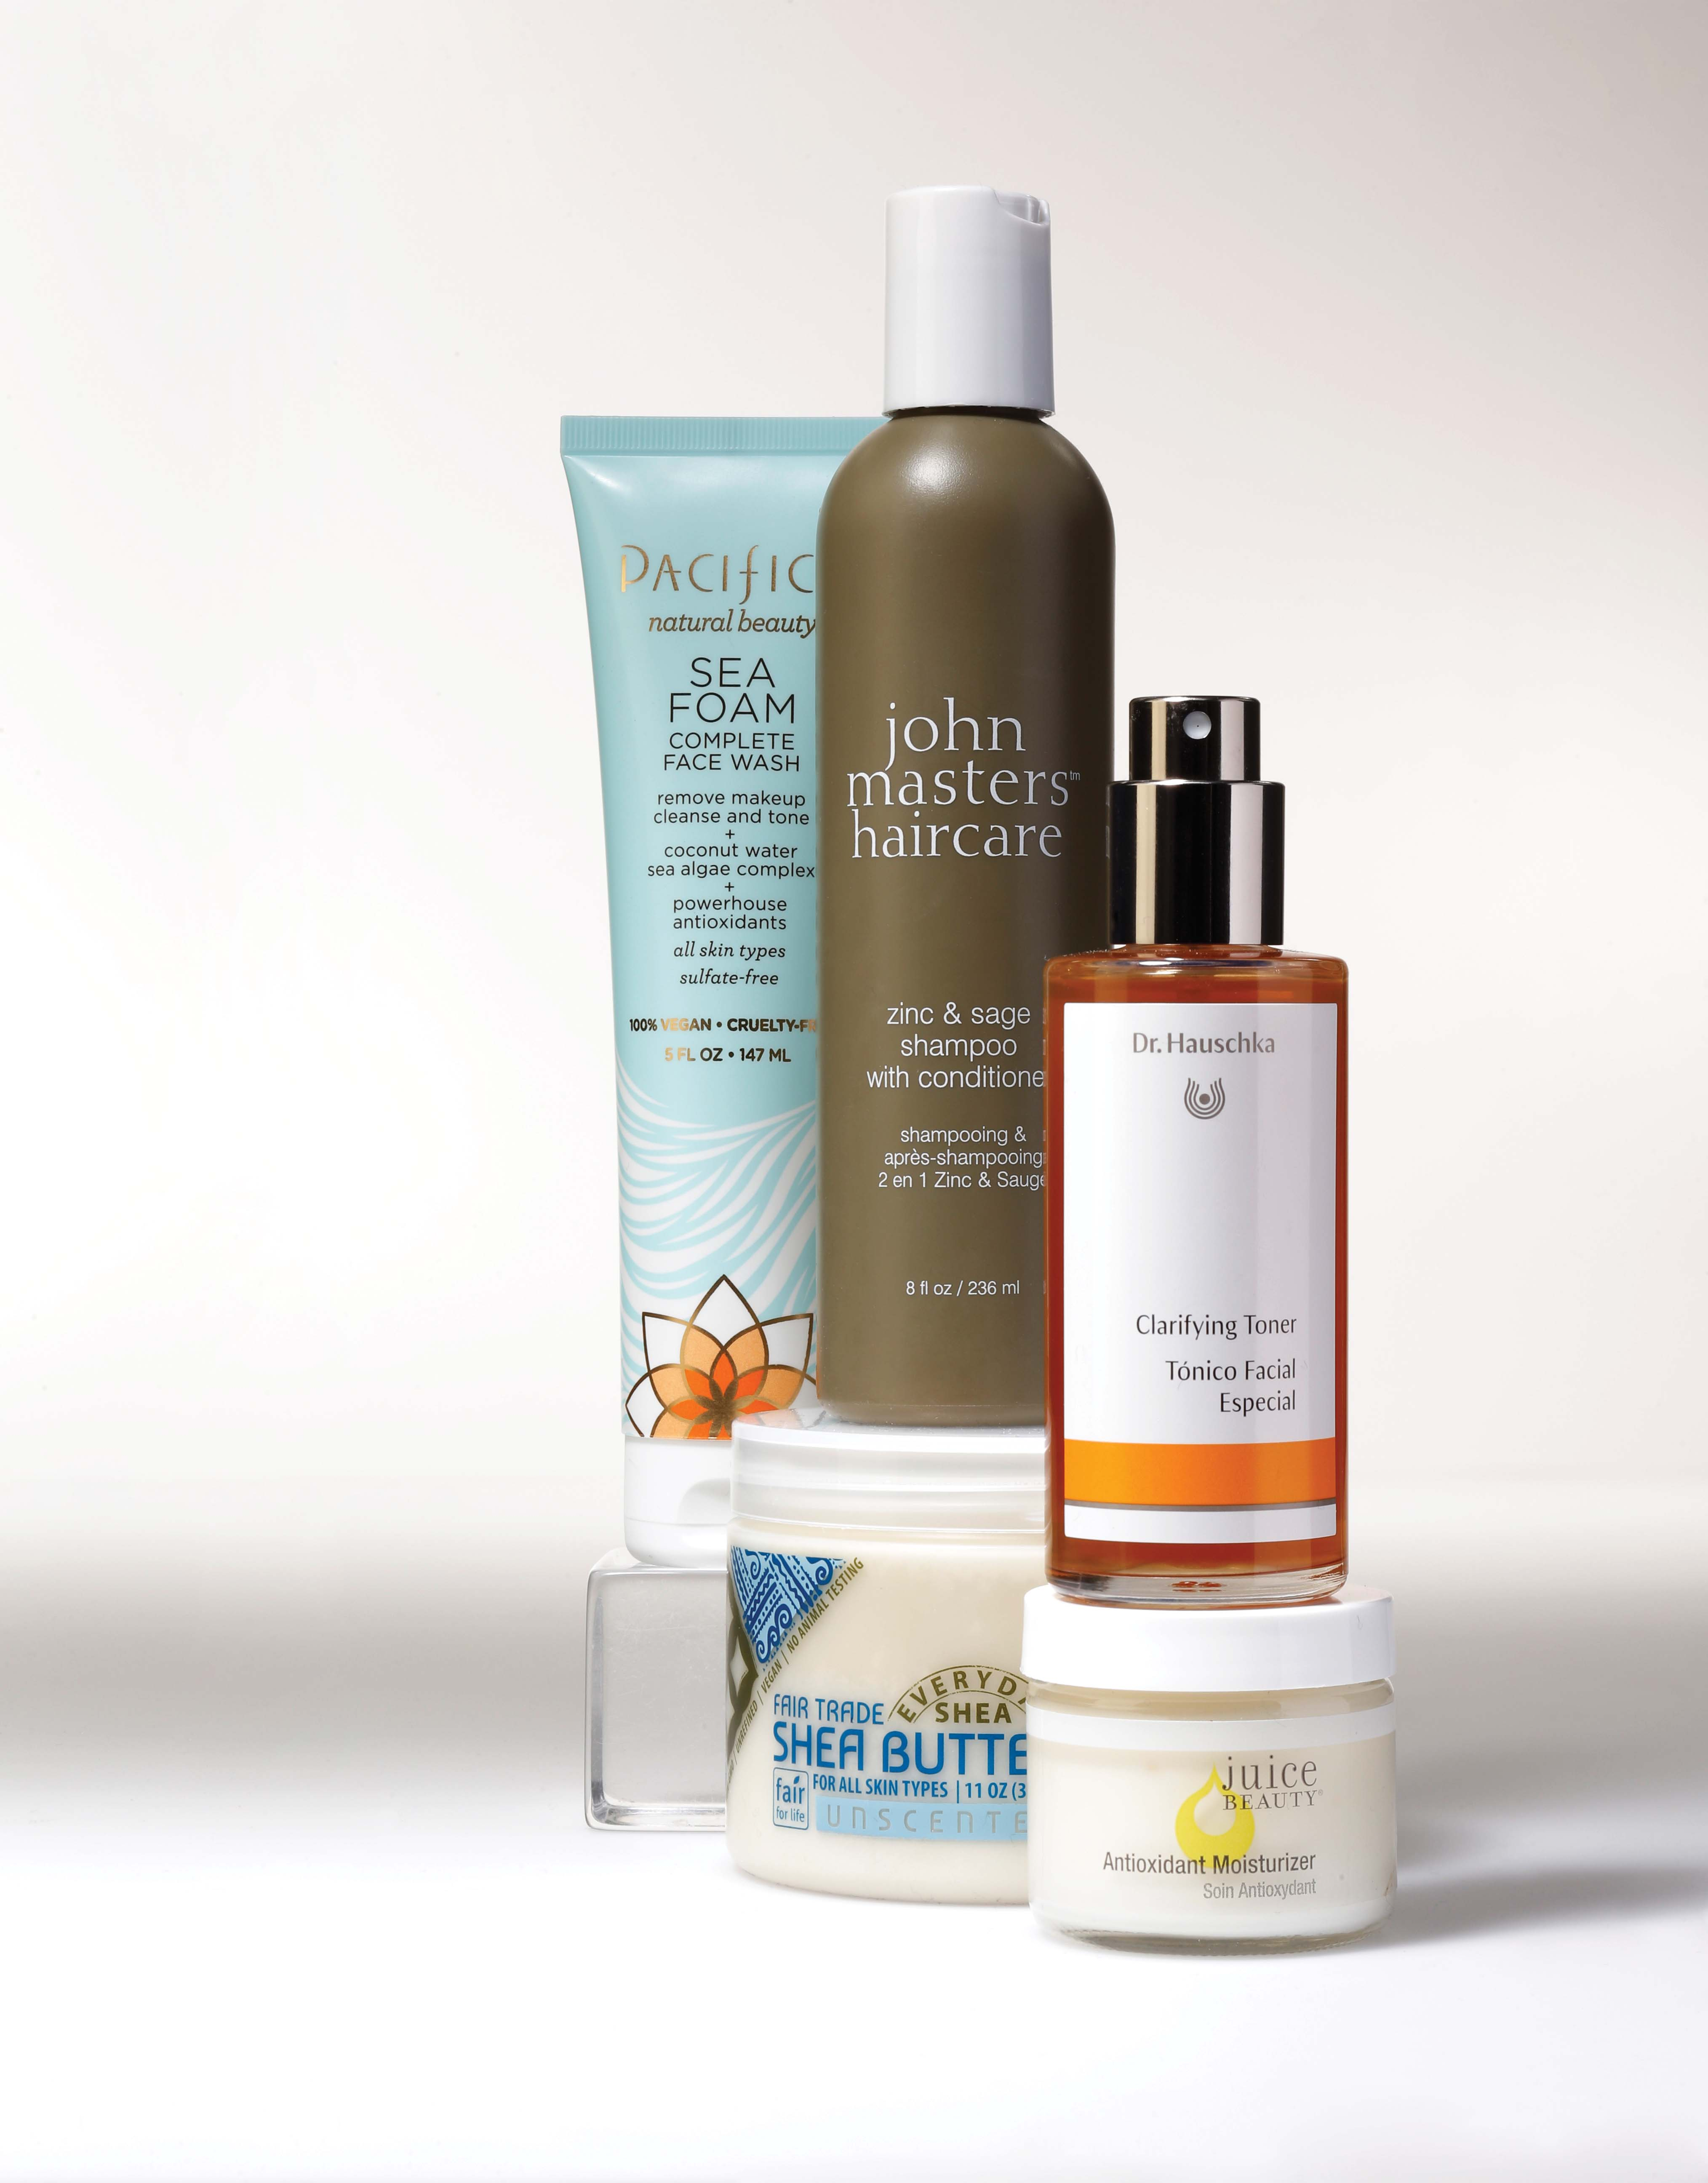 Pacifica Natural Beauty Sea Foam Complete Face Wash, ohn Masters Hair Care Zinc & Sage Shampoo With Conditioner, Dr. Hauschka Clarifying Toner, Everyday Shea Fair Trade Shea Butter- Unscented, Juice Beauty Antioxidant Moisturizer.